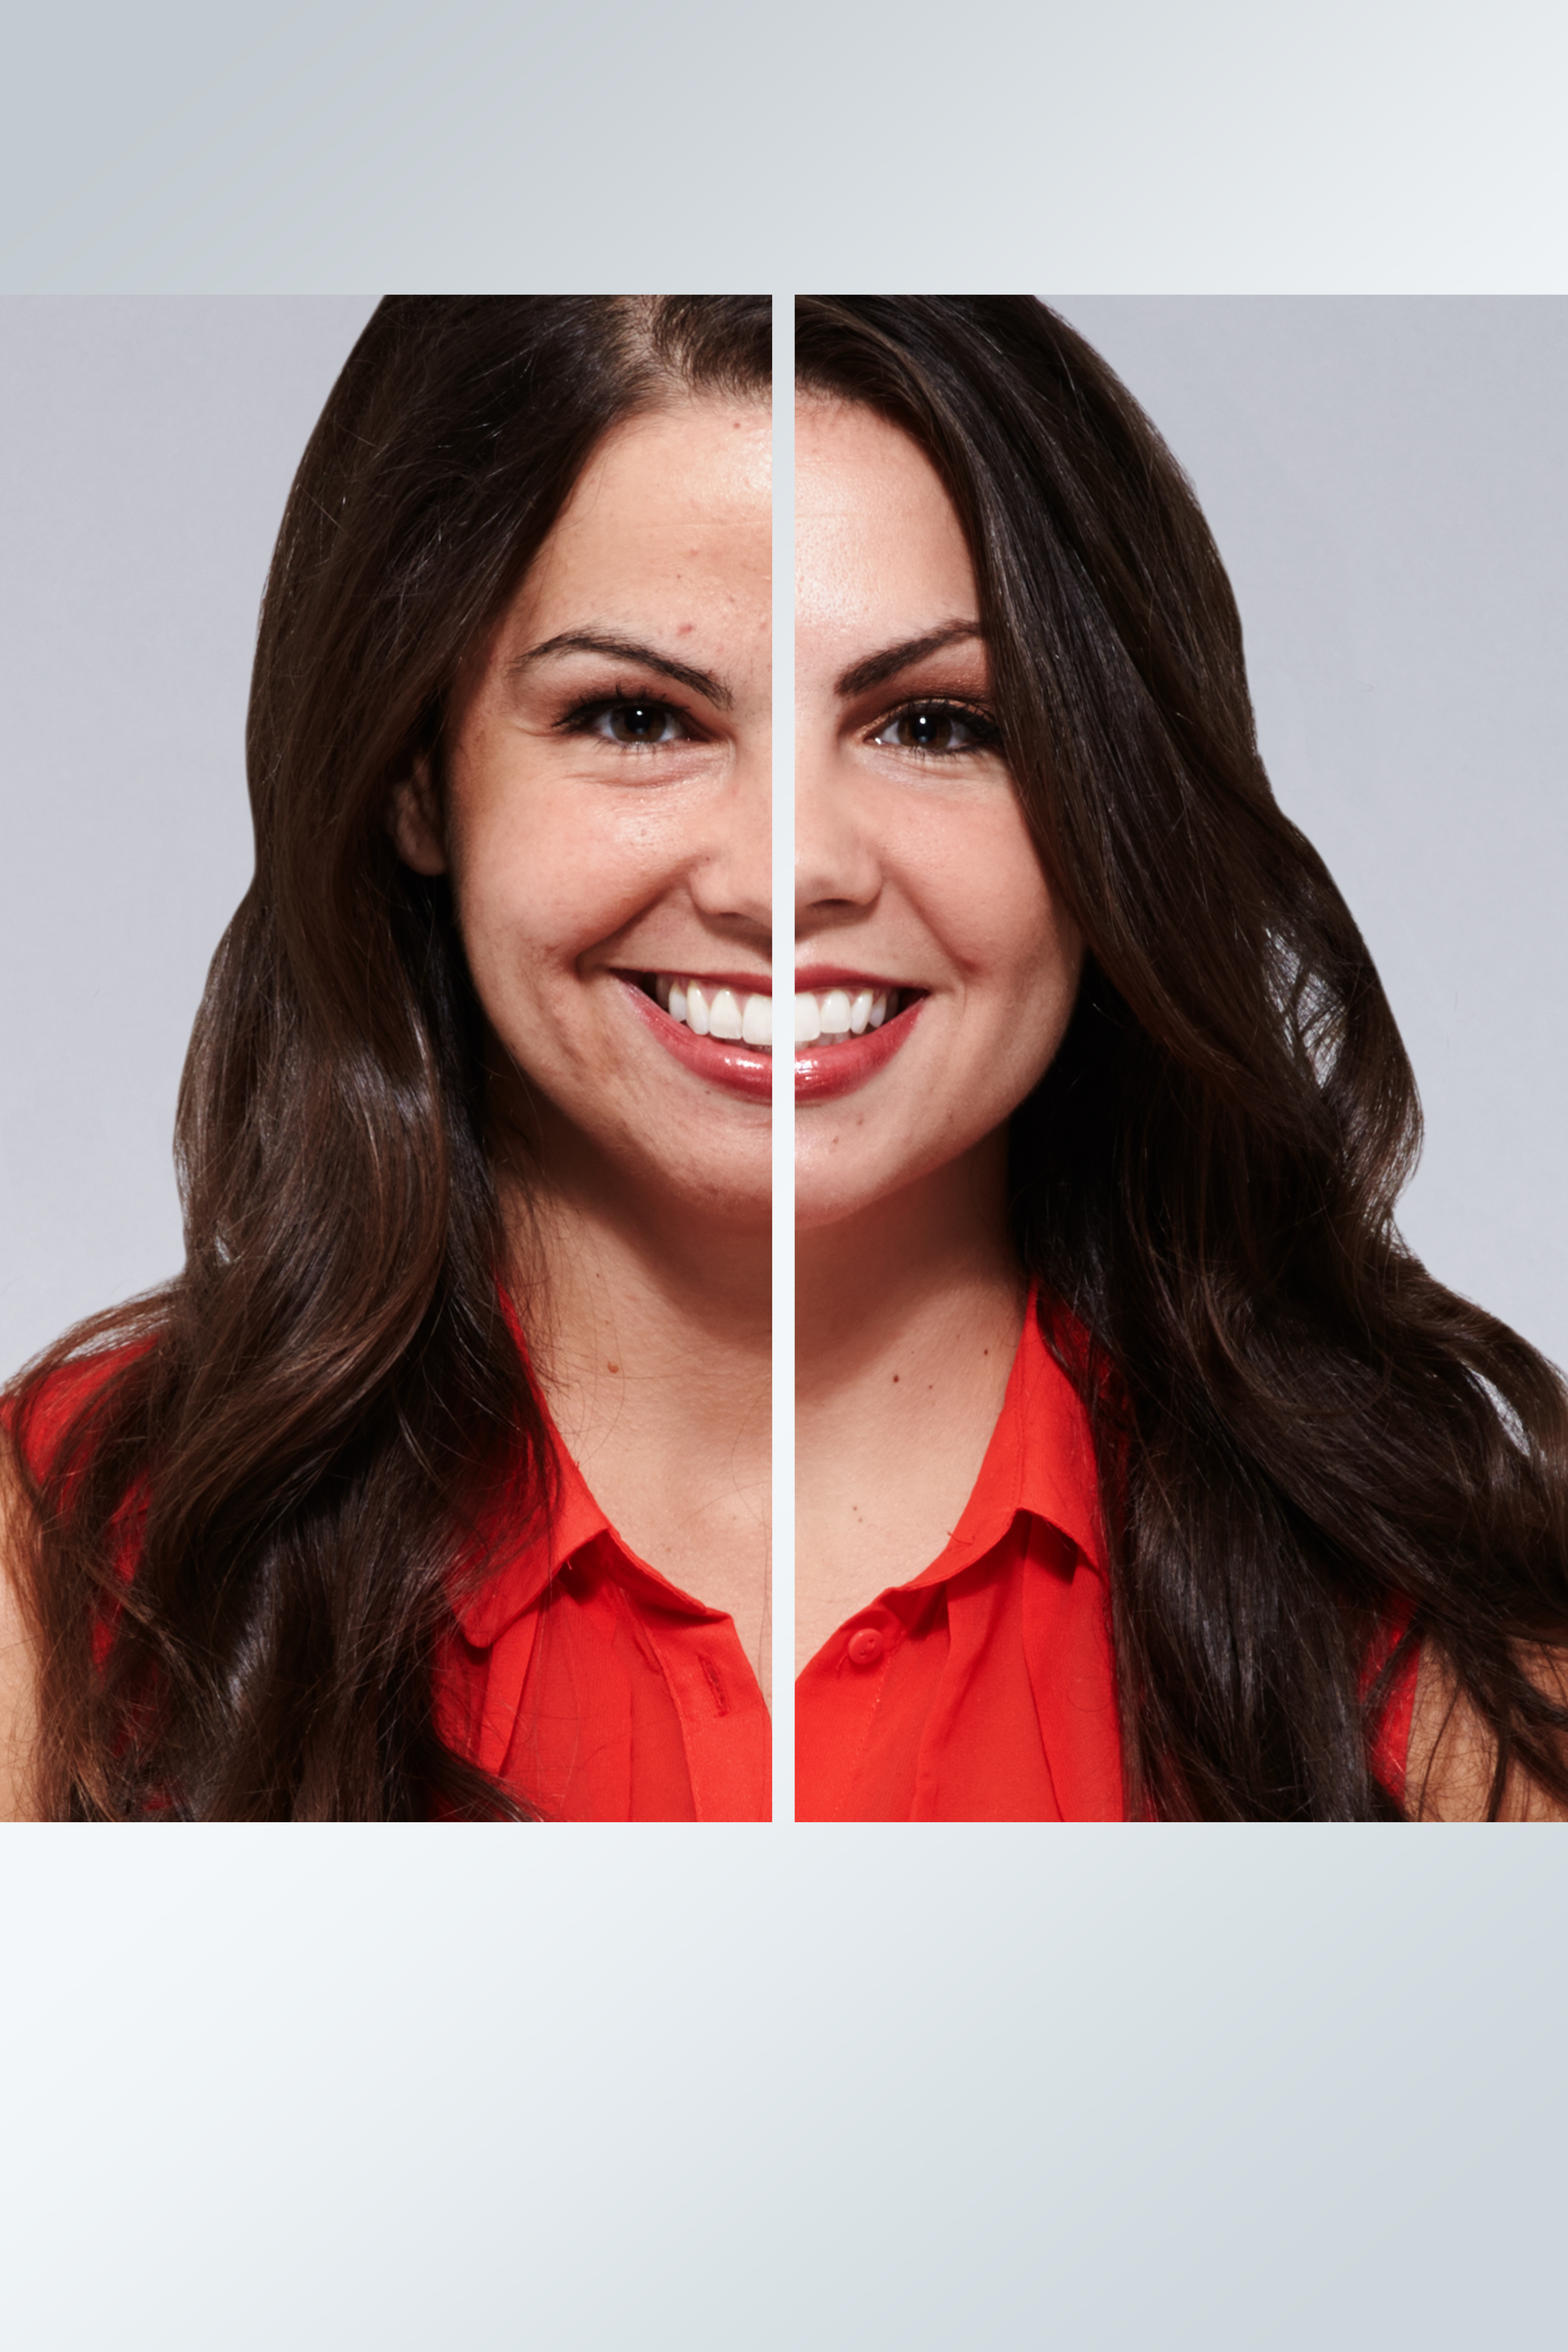 100% of twins using ProX by Olay said they saw improvement to her skin tone. (Photo: Business Wire)